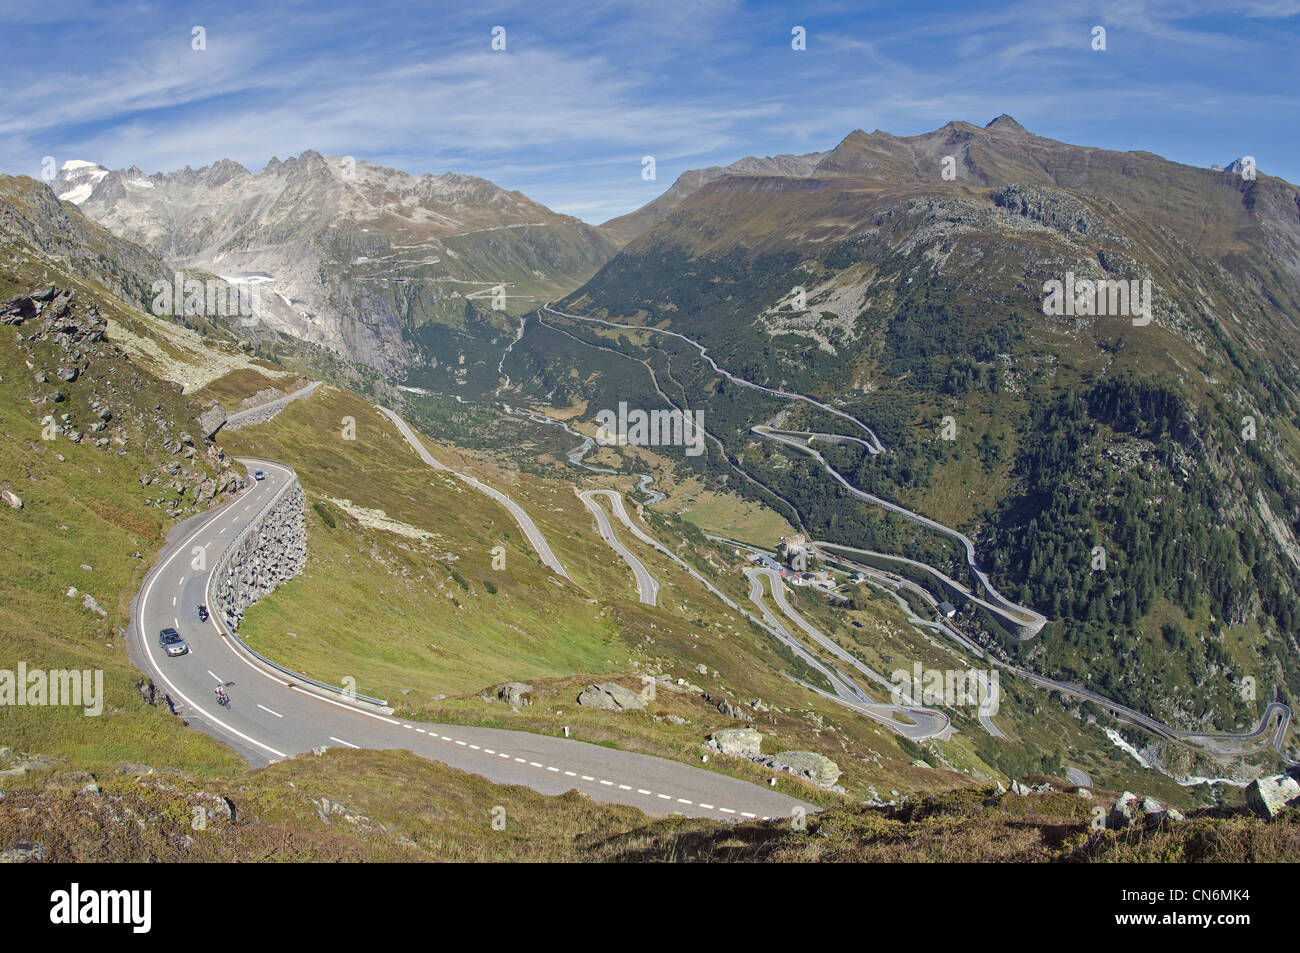 Rhone Valley and Gletsch with the Rhone Glacier from the Grimsel Pass in the Canton of Valais in Switzerland Stock Photo